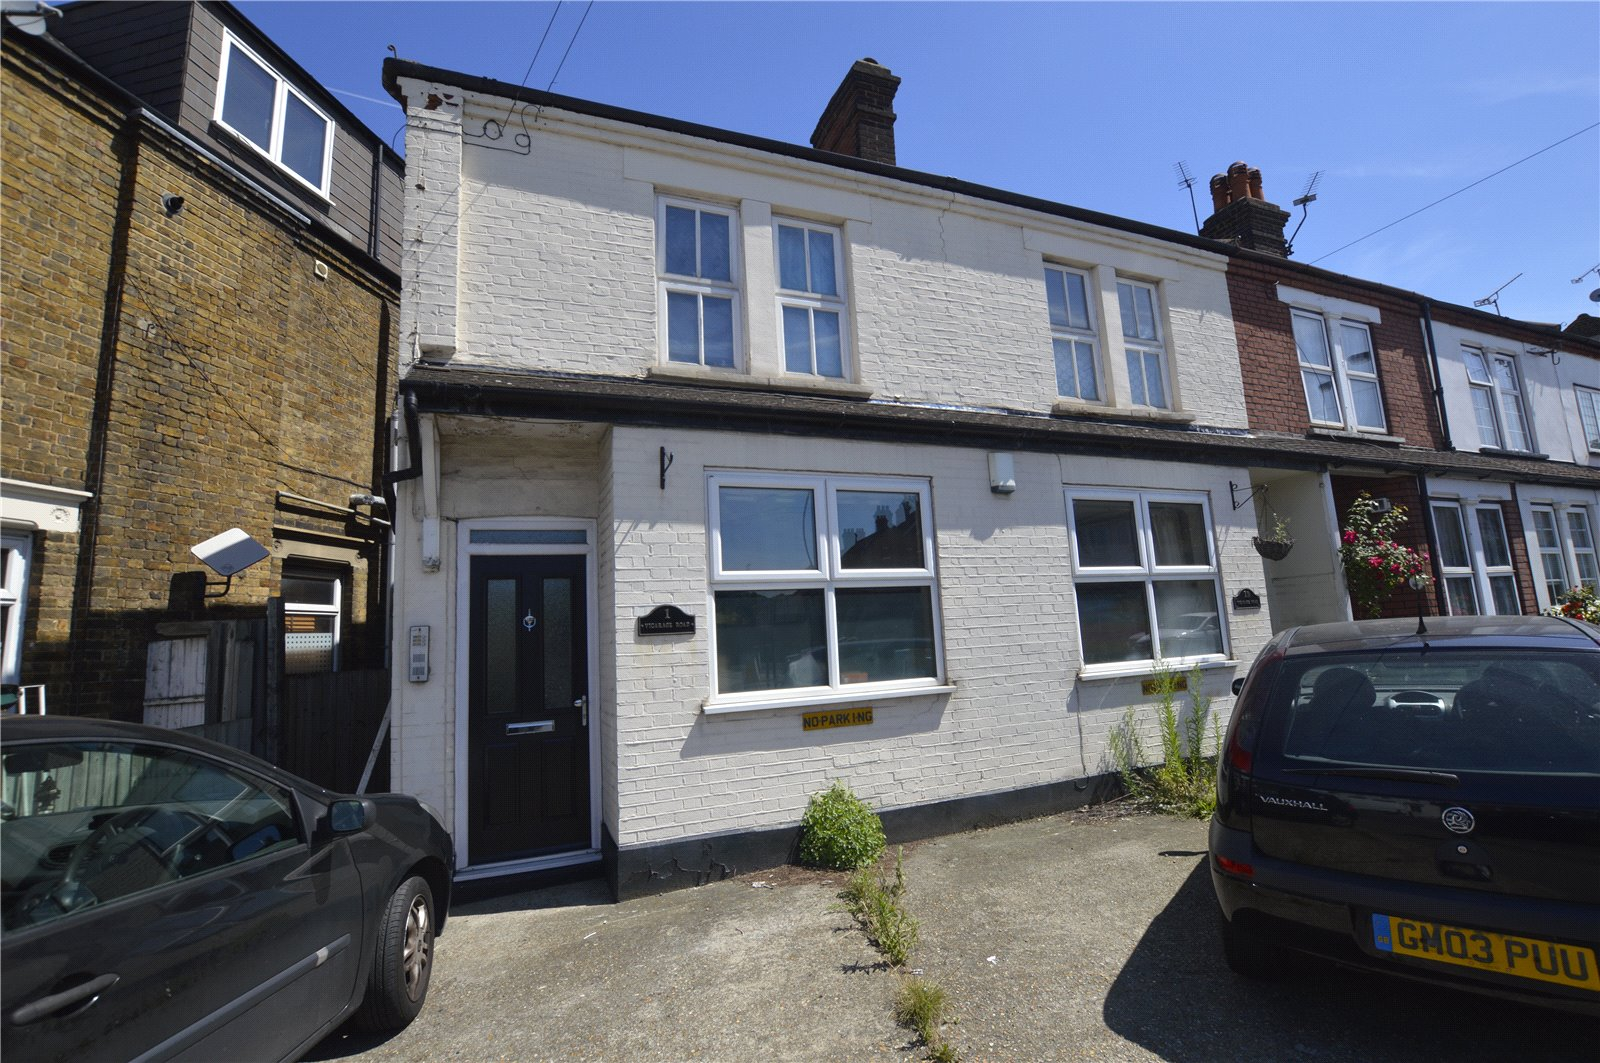 2 Bedrooms Maisonette Flat for sale in Vicarage Road Bexley Kent DA5